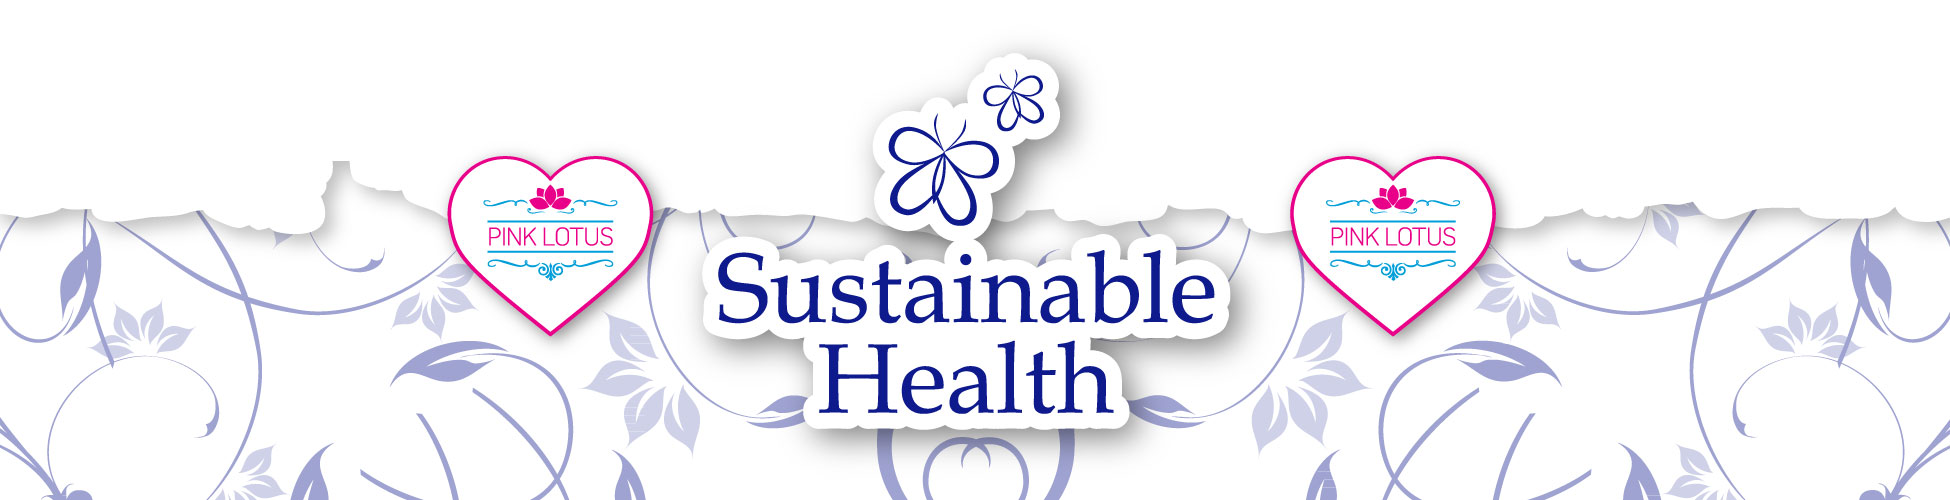 Pink Lotus Sustainable Health